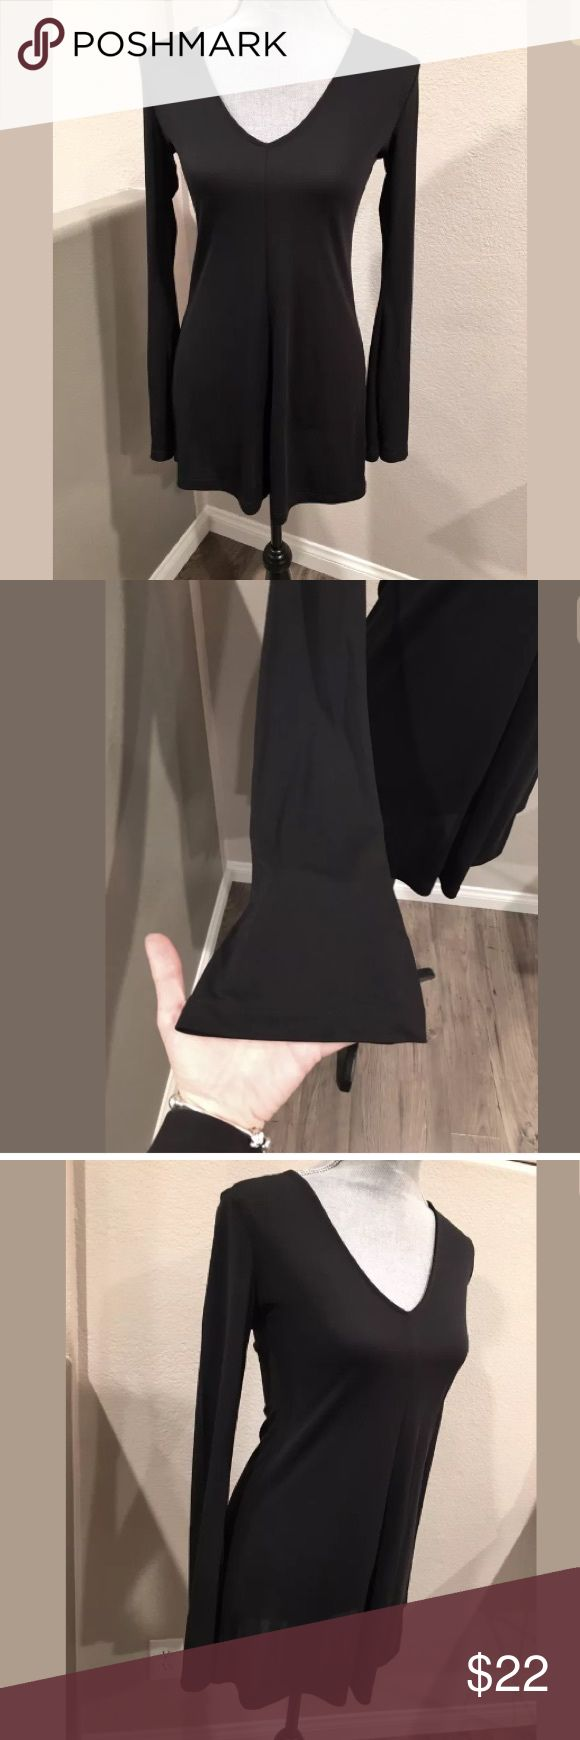 ASOS Black V Neck Long Bell Sleeves Black Dress 2 Excellent Condition like new this dress looks killer with over the knee boots size 2 ASOS Dresses Mini